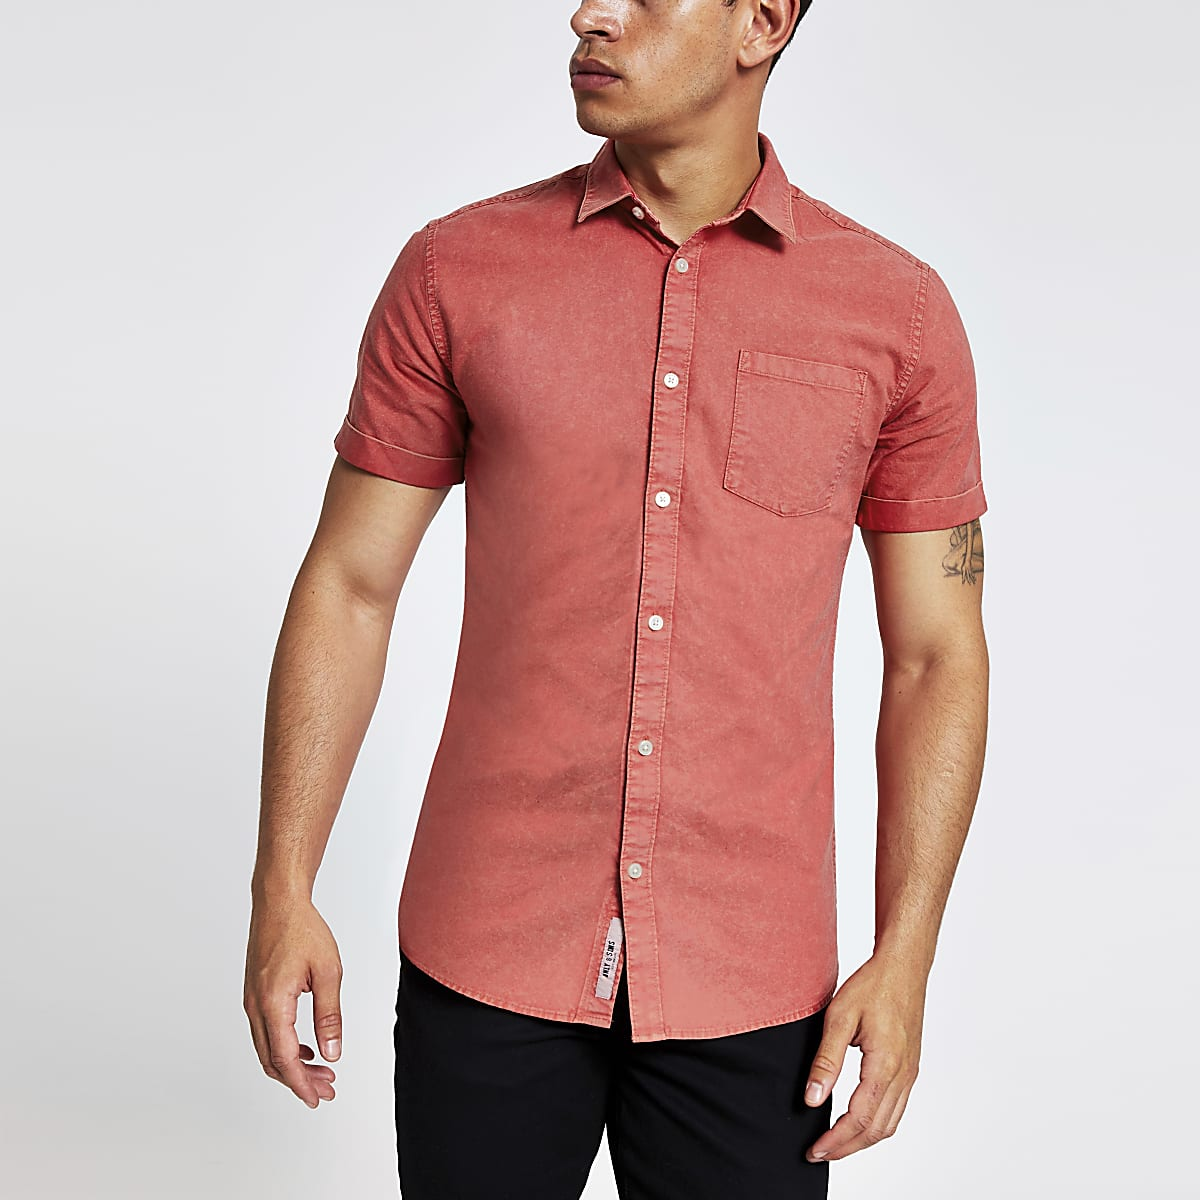 Only & Sons – Rotes, kurzärmeliges Hemd